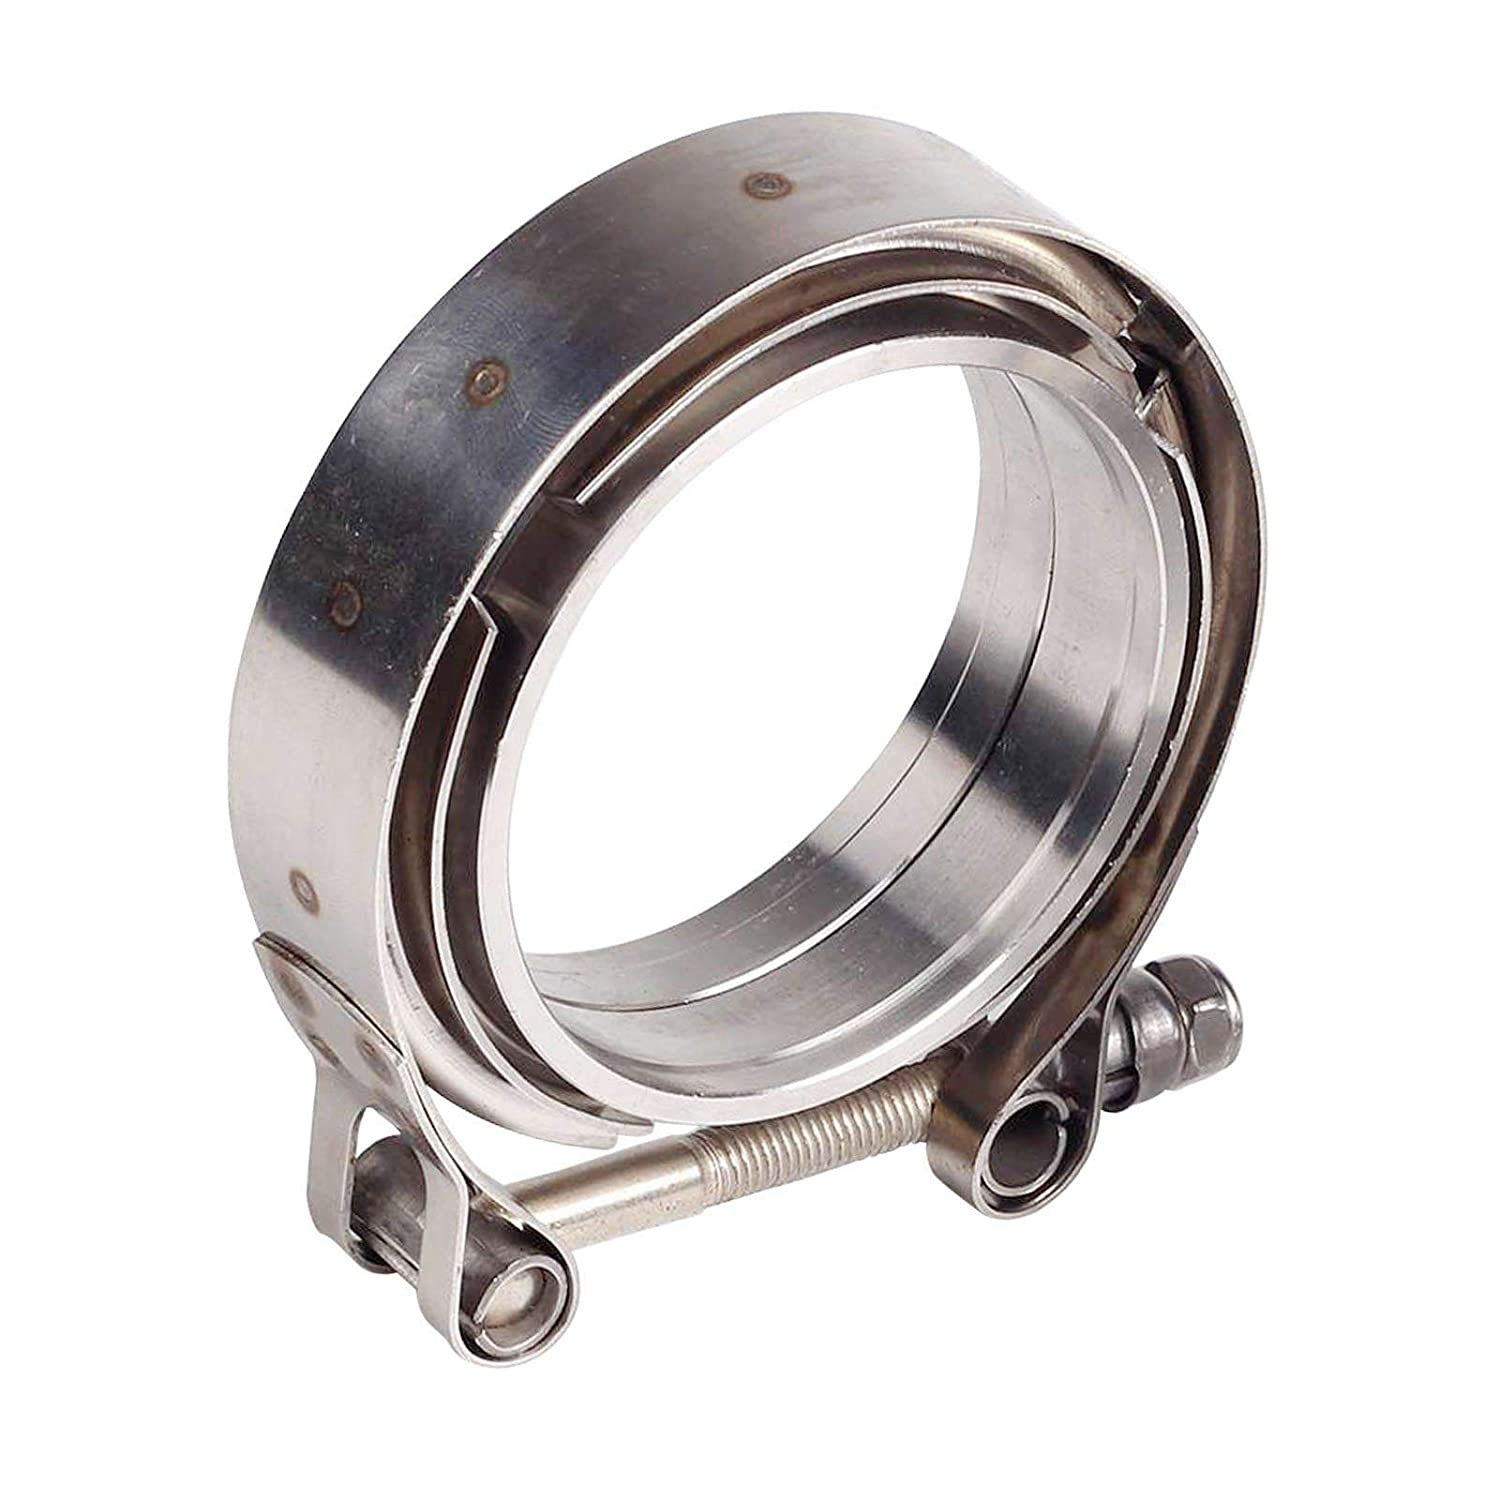 Downpipes,Exhaust Systems 2.5in 63mm SS Vband V-Band Flange Kit 2.5 Inch V Band Clamp with Stainless Steel Flanges for Turbo